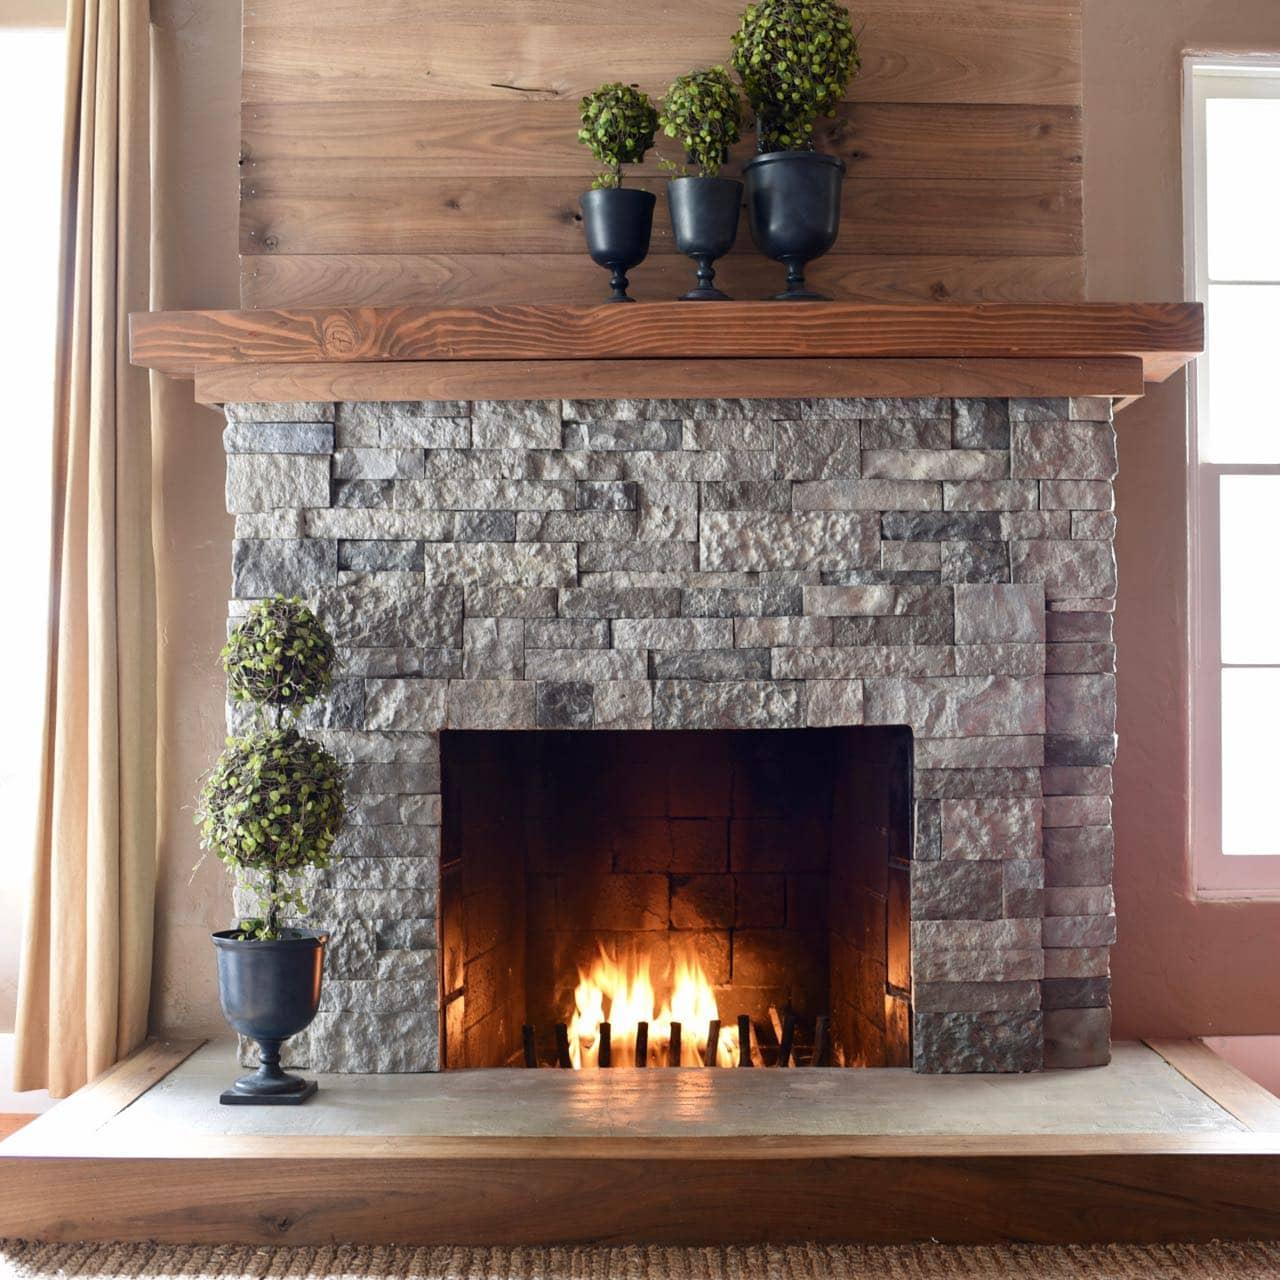 Diy Brick Fireplace Remodel Great Our Fireplace Makeover Building